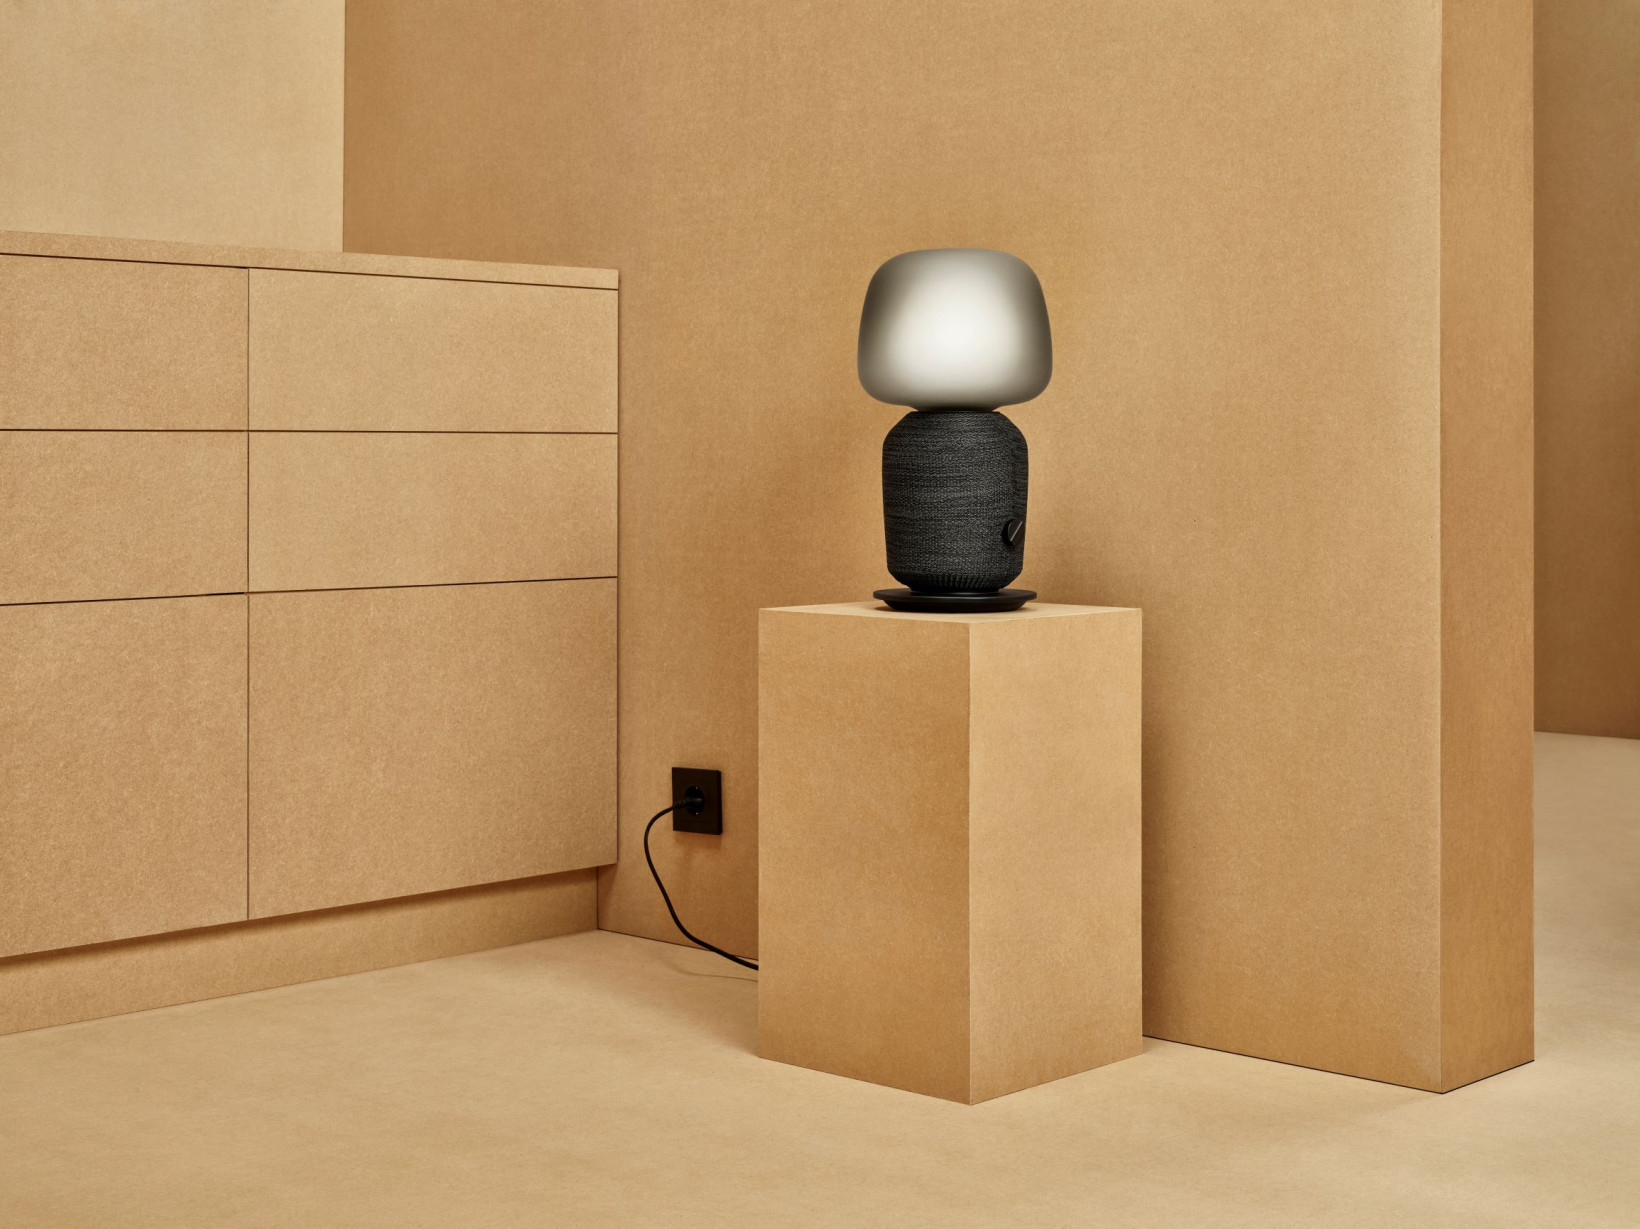 Ikea's Symfonisk works with Sonos' range of smart speakers, and can be controlled via the company's app